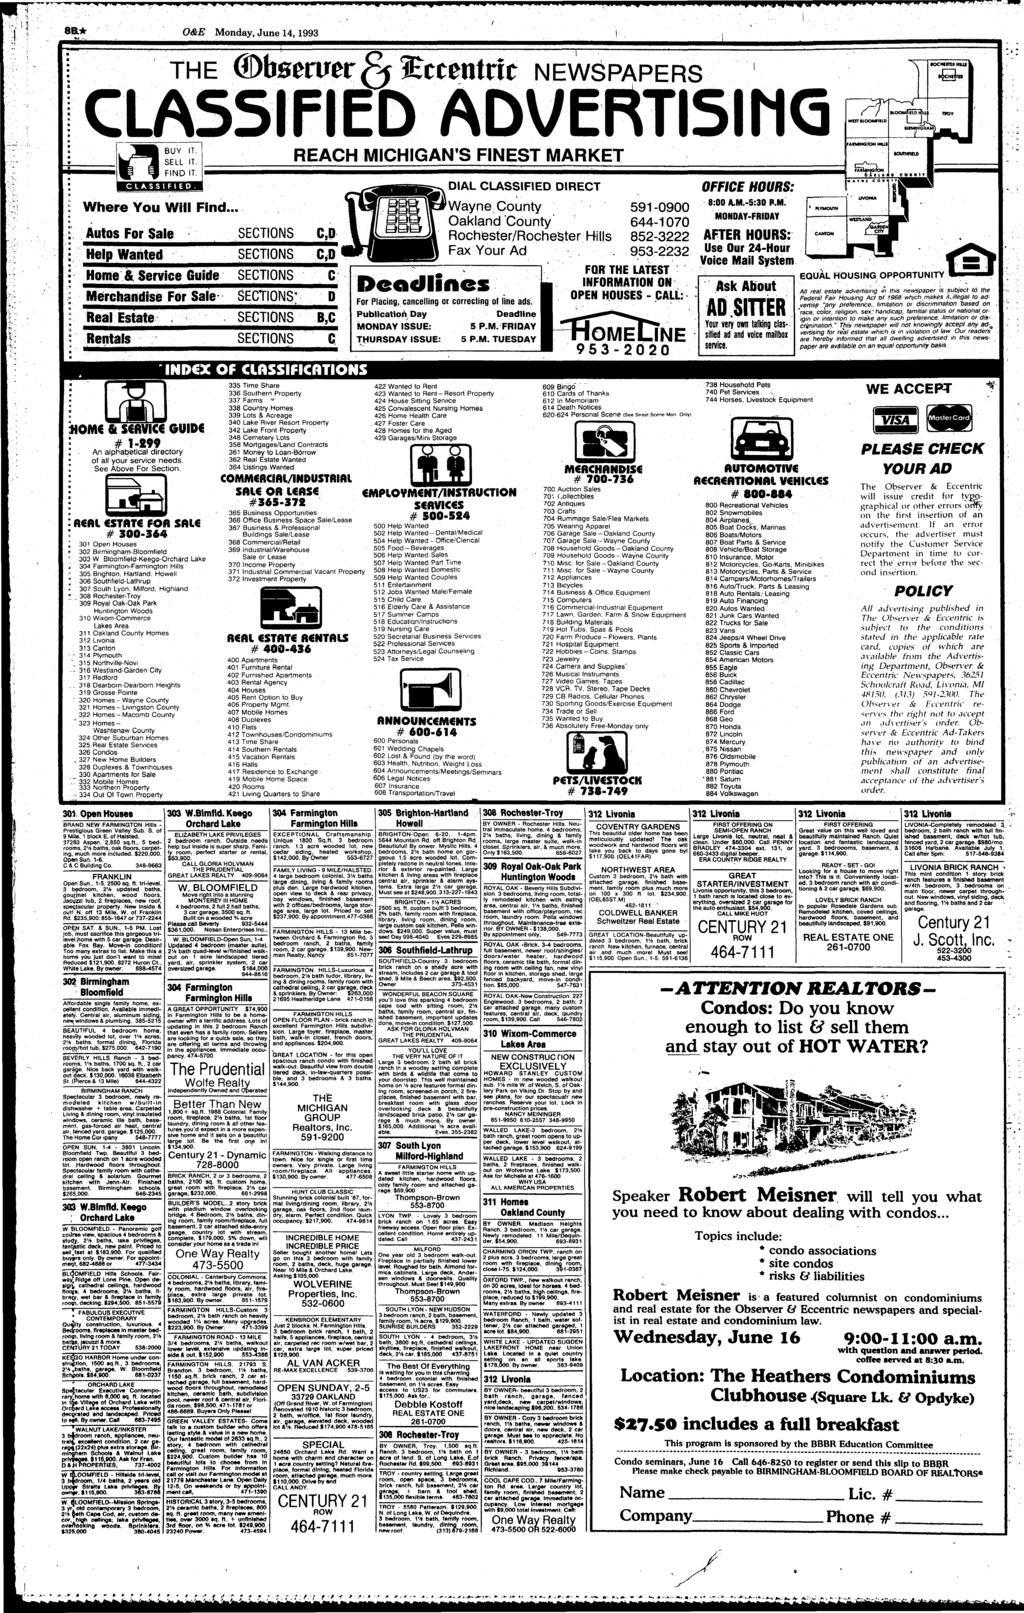 Family Escapes Fire Dad Charged Pdf Location 2006 Honda Pilot Besides 2001 Chevy Prizm Fuse Box Diagram 8a Oe Monday June 141993 The Bbstwtrfj Eccentric Newspapers